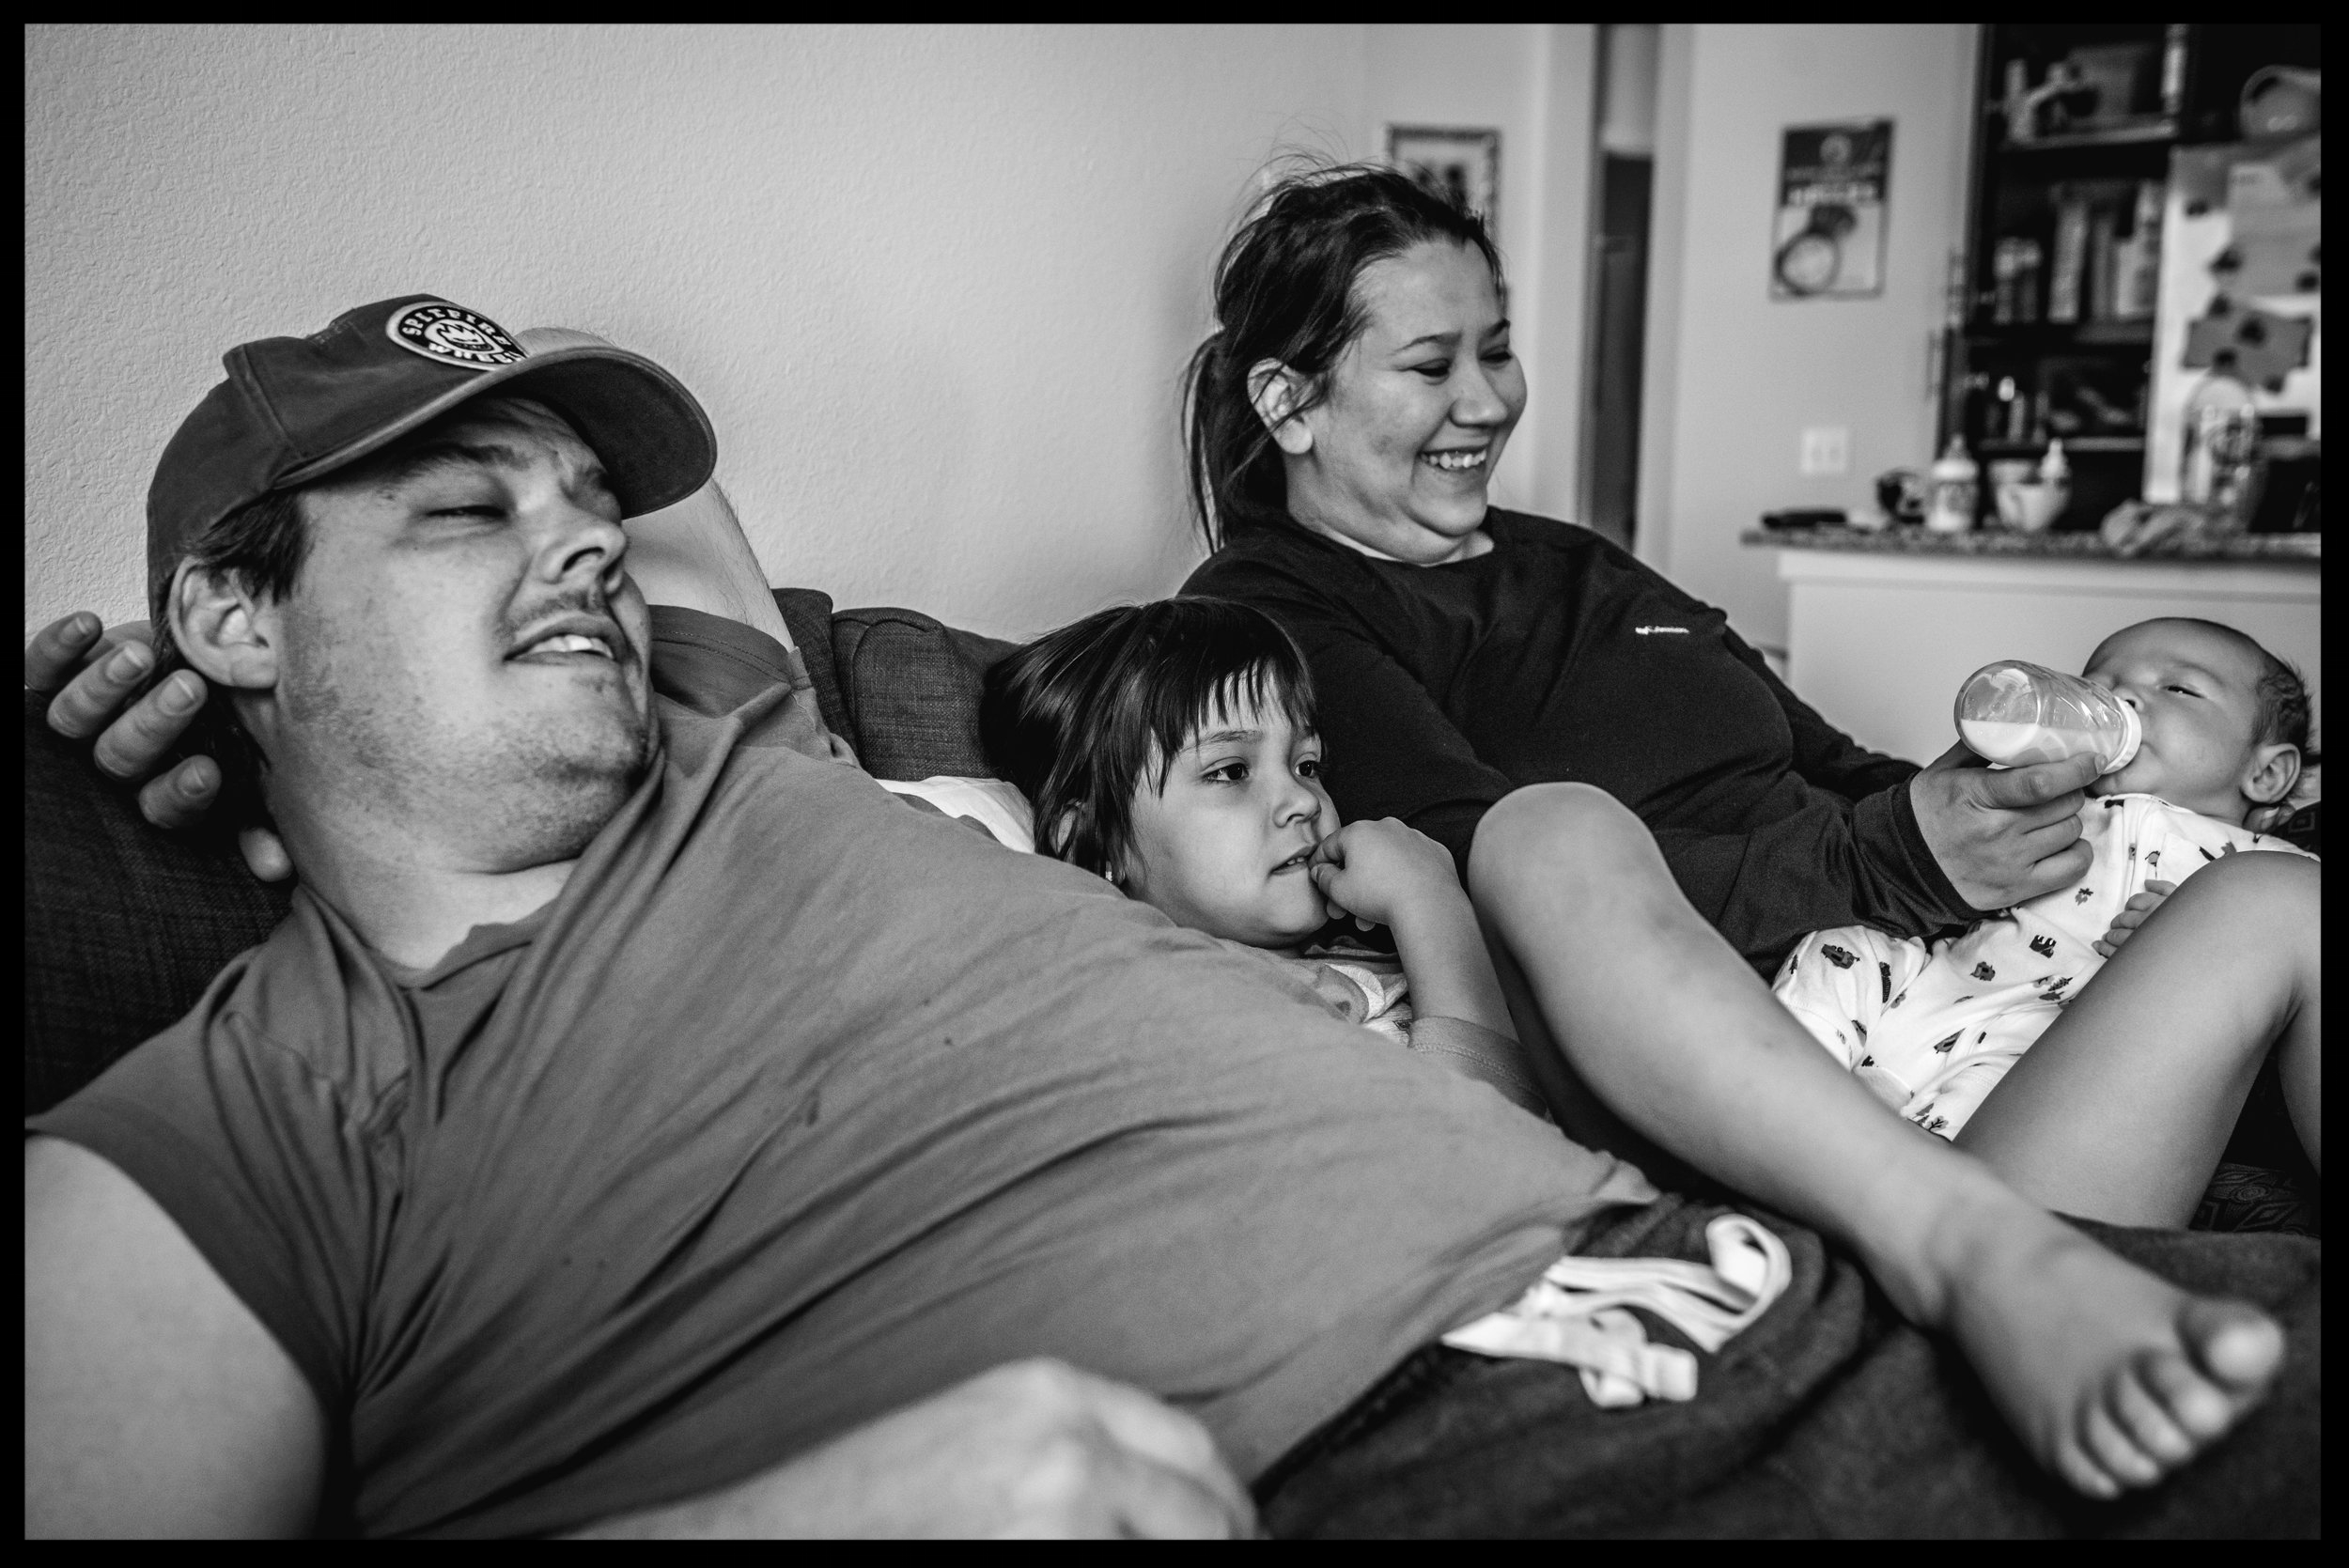 Parents and two kids all cuddling together on the couch, black and white, Lakewood, Colorado